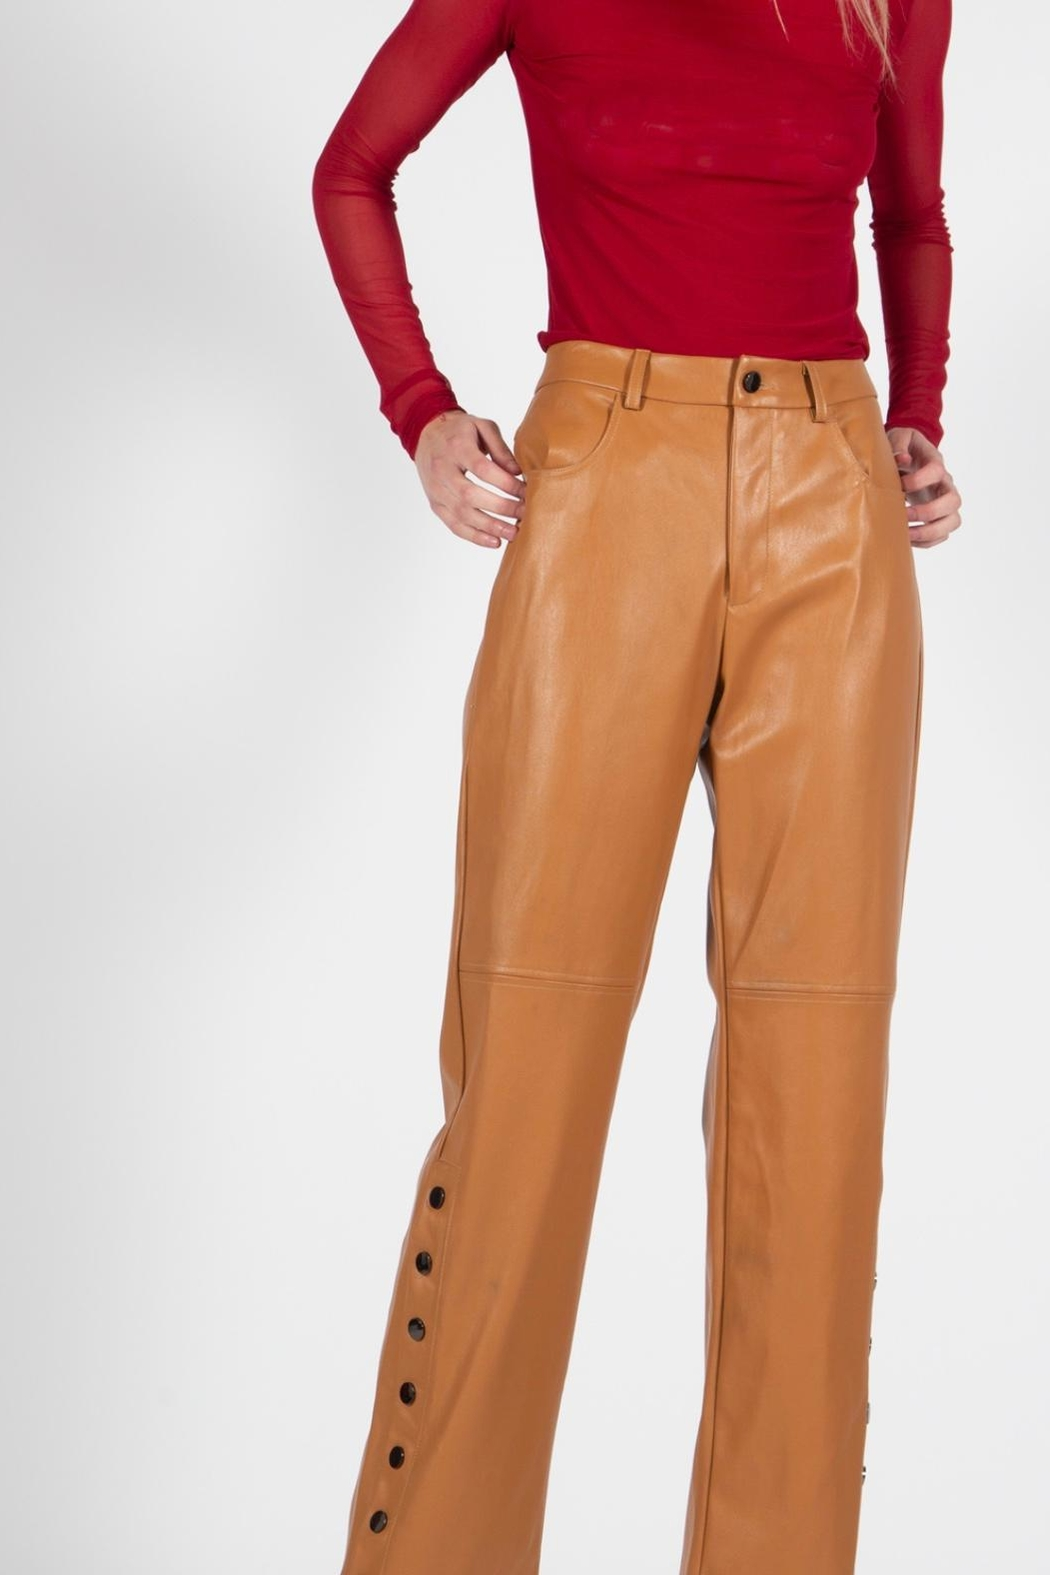 BEULAH STYLE Camel Leather Pants - Front Full Image